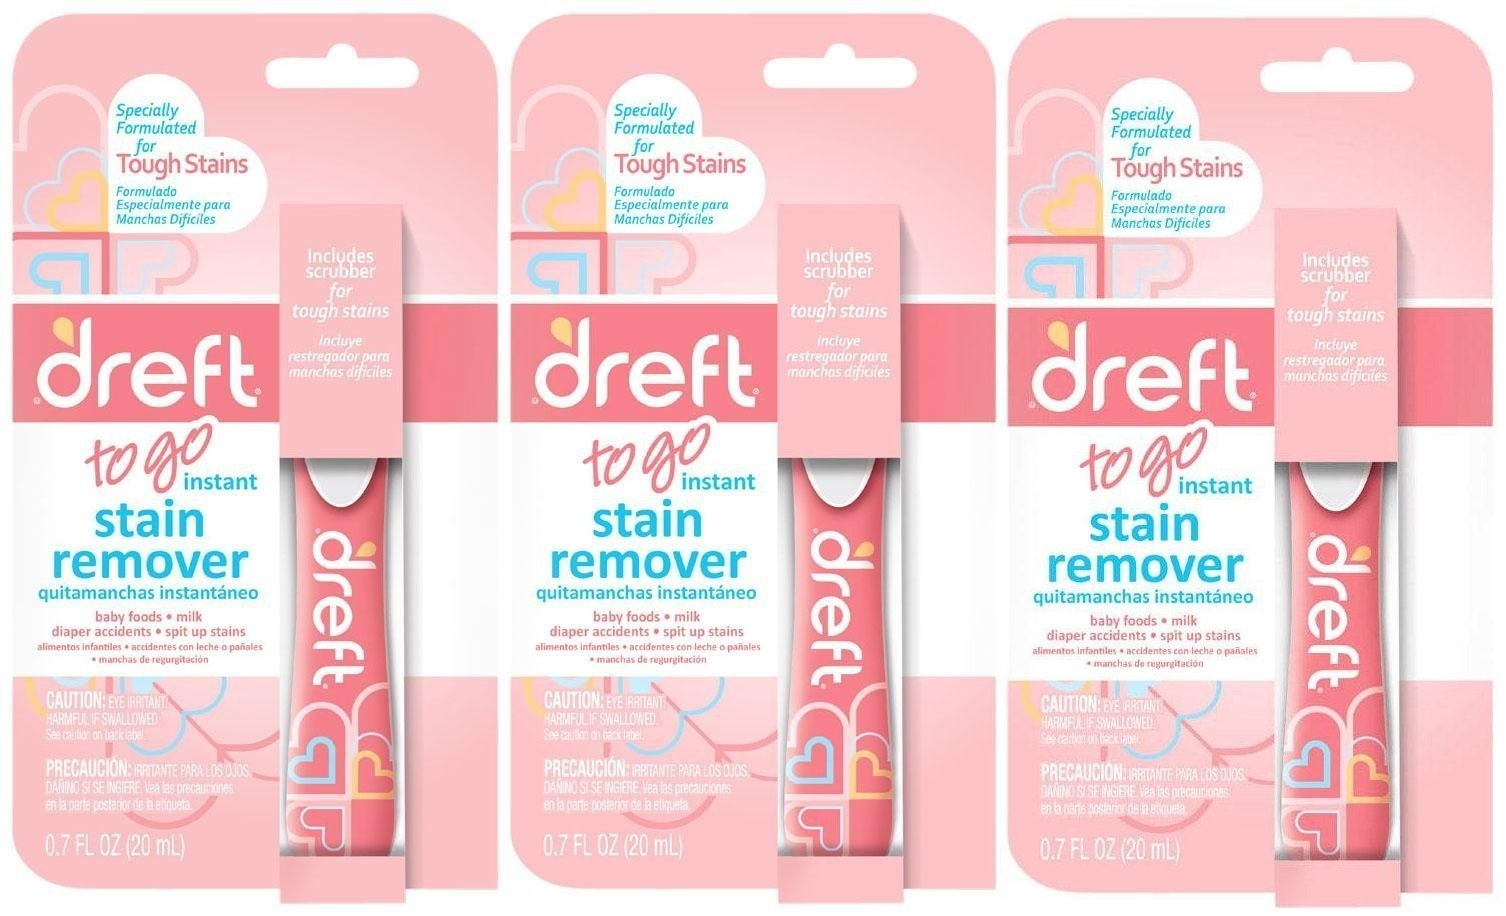 Dreft Baby Laundry Instant Stain Remover Pen, 0.7 Fluid Ounce (Pack of 3 Travel To-Go Pens) by Dreft